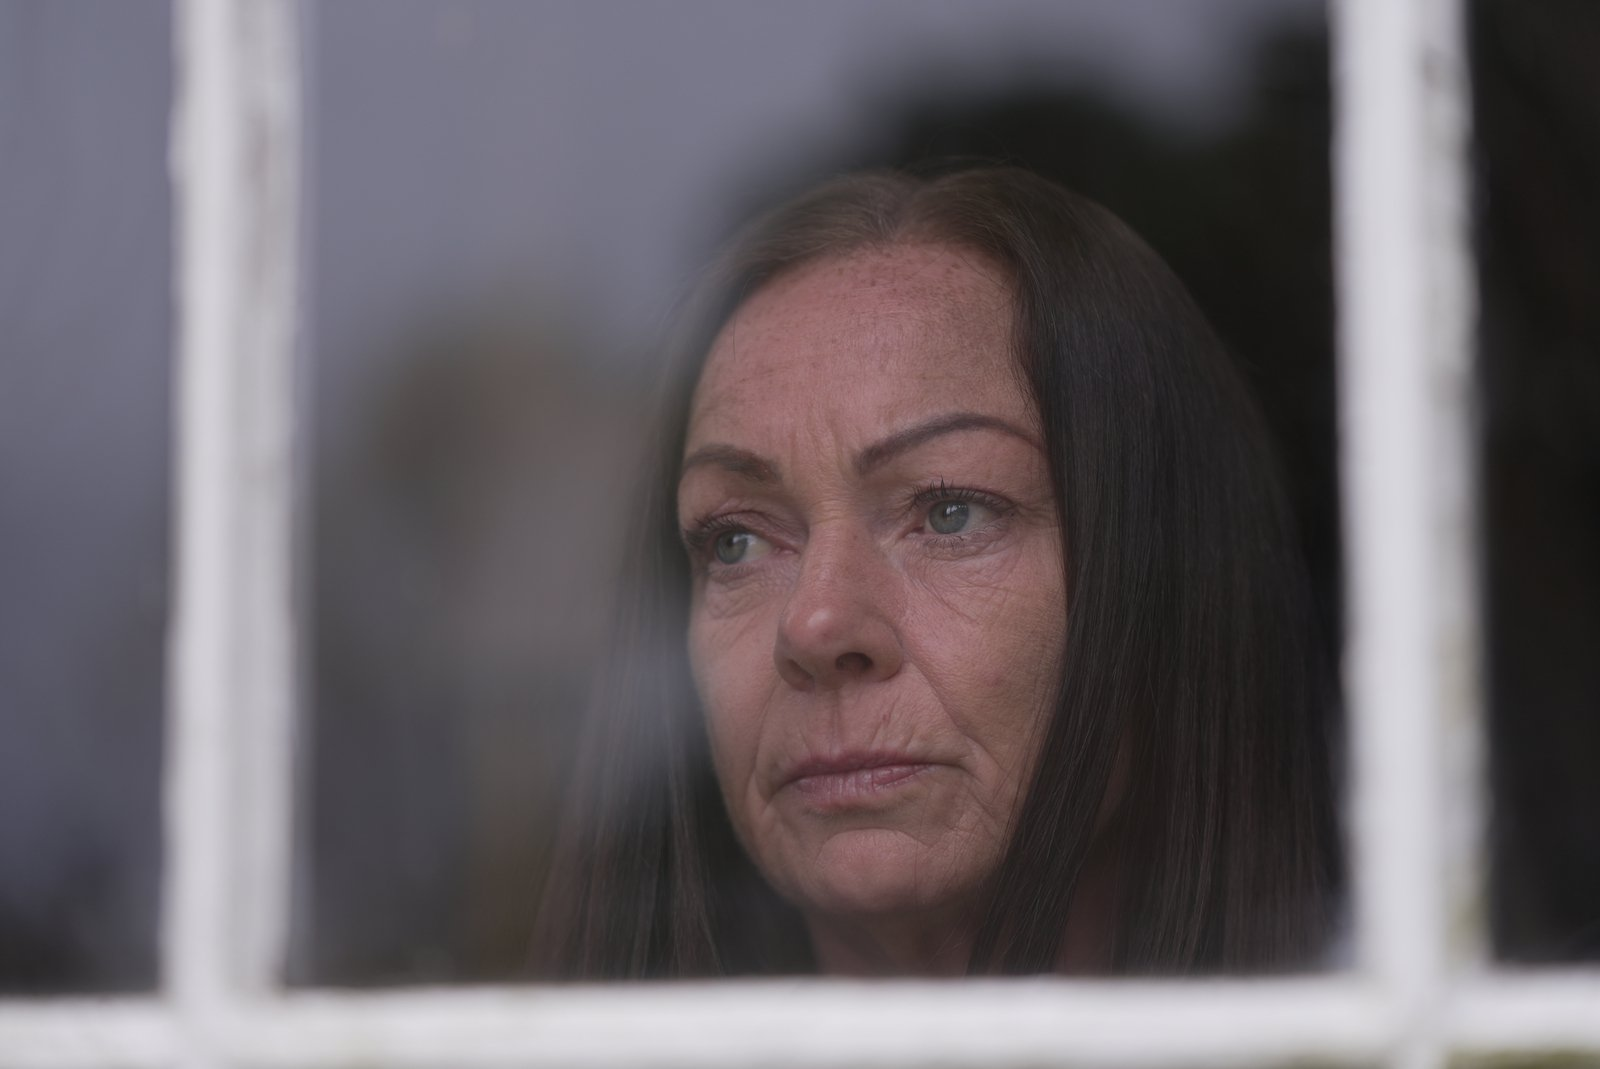 Image - Days after being vaccinated, Christine Thompson's mother, Kathleen, was diagnosed with Covid-19